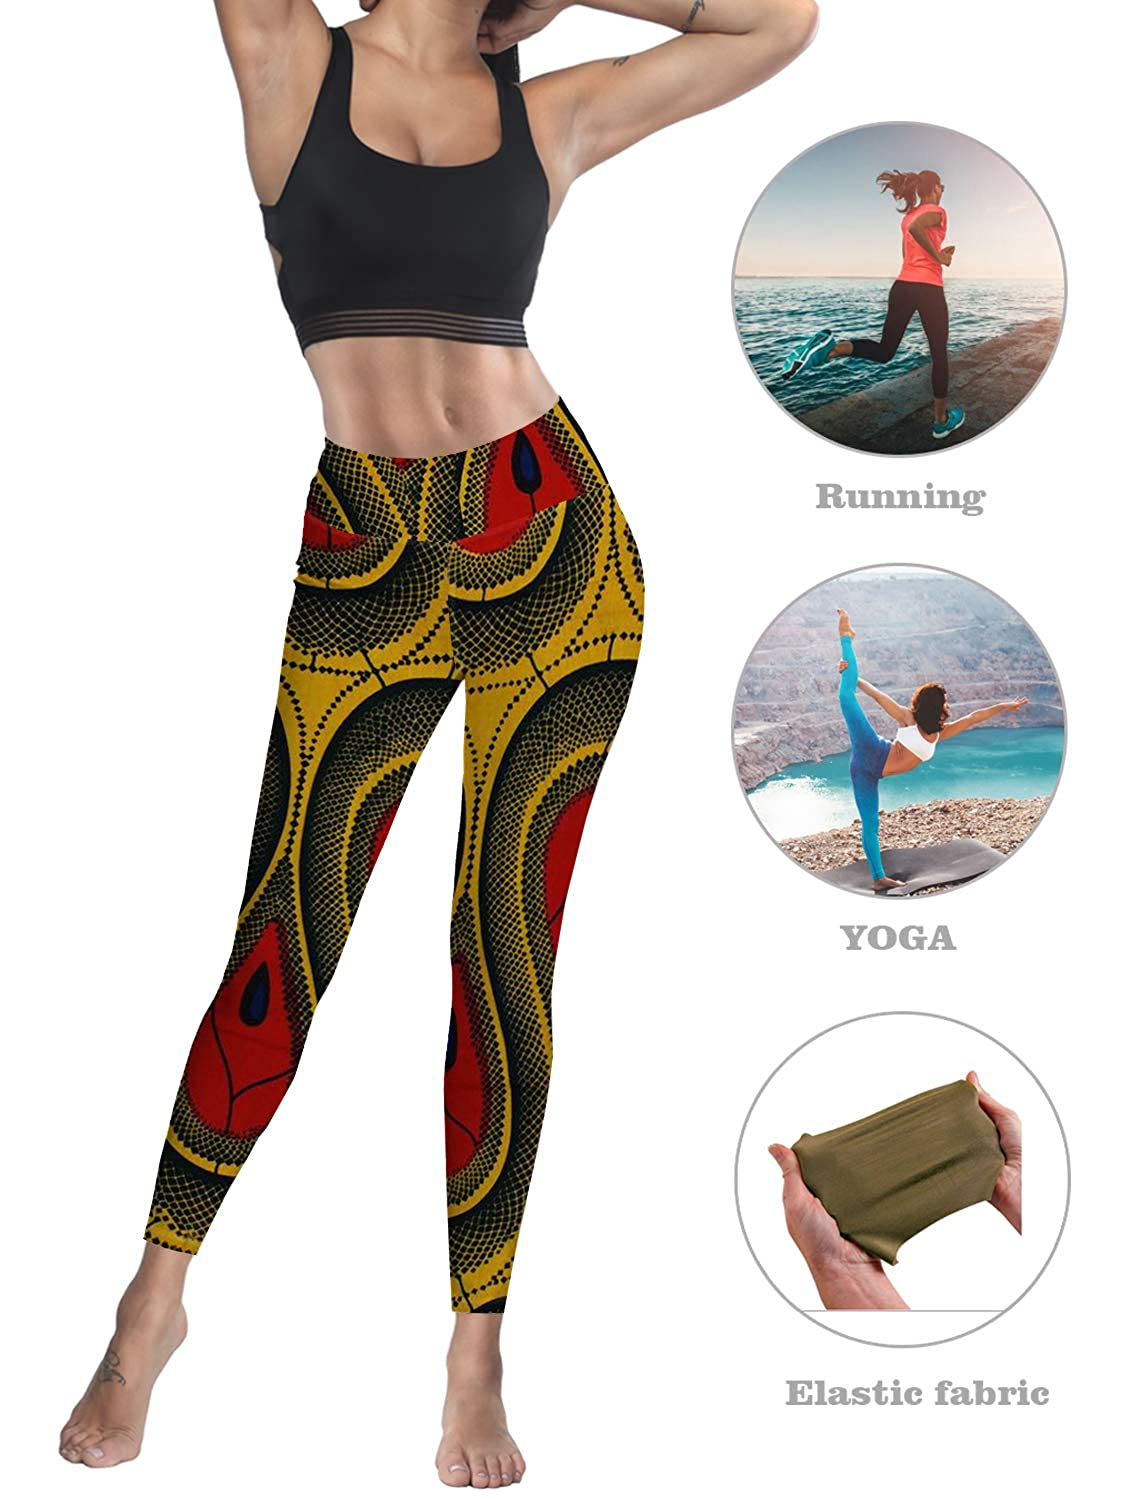 Sodika Women Stretch High Waist Yoga Pants Running Tights Ethnic Pattern Capris Compression Workout Leggings